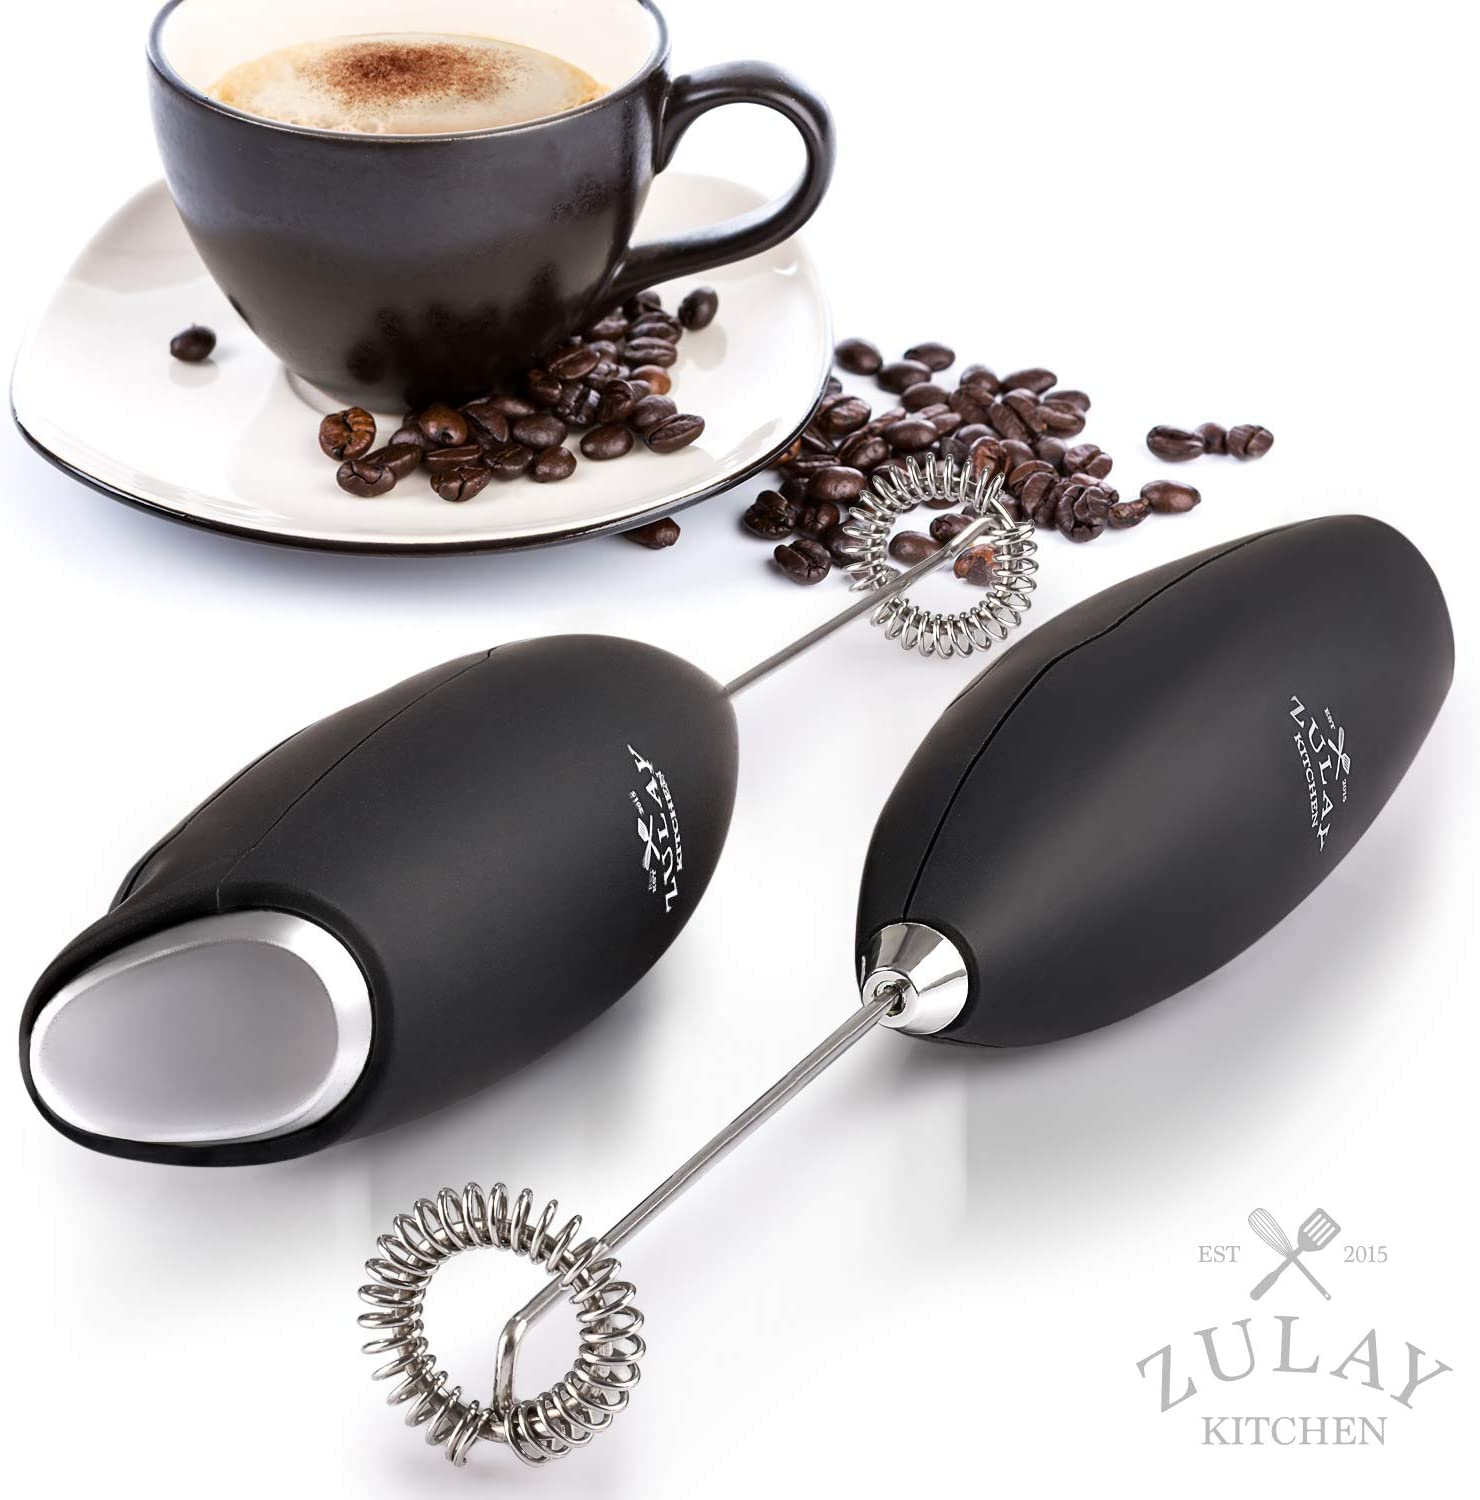 Includes Frother Mini Blender and Foamer Perfect for Coffee Whisk Drink Mixer Handheld Foam Maker for Lattes Decorating Stencils and Frothing Cup Zulay Milk Boss Milk Frother Complete Set